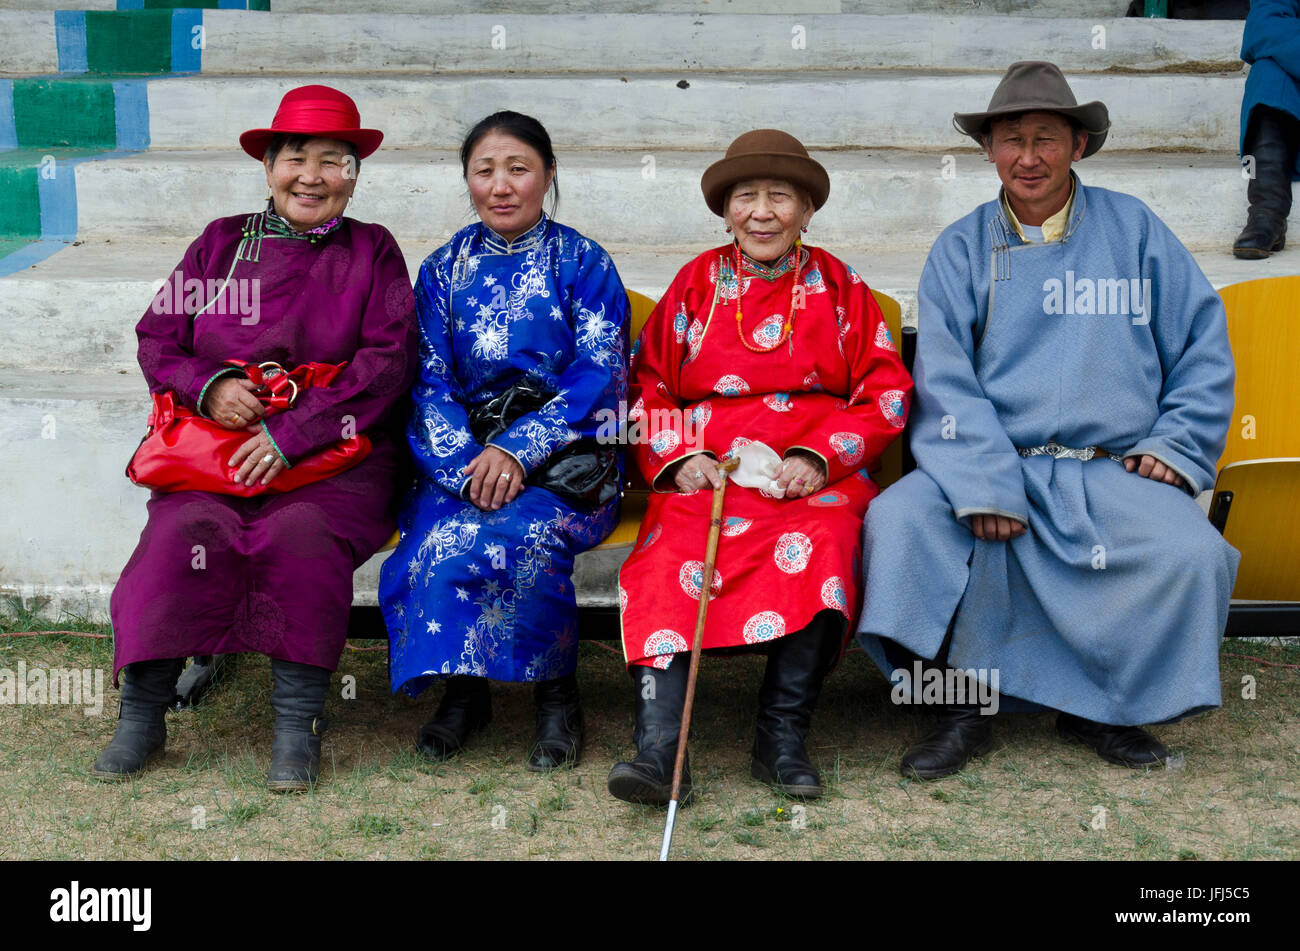 Mongolia, Central Asia, Sayhan, Naadam feast, national feast of Mongolia, sports stadium, wrestling match, spectator - Stock Image